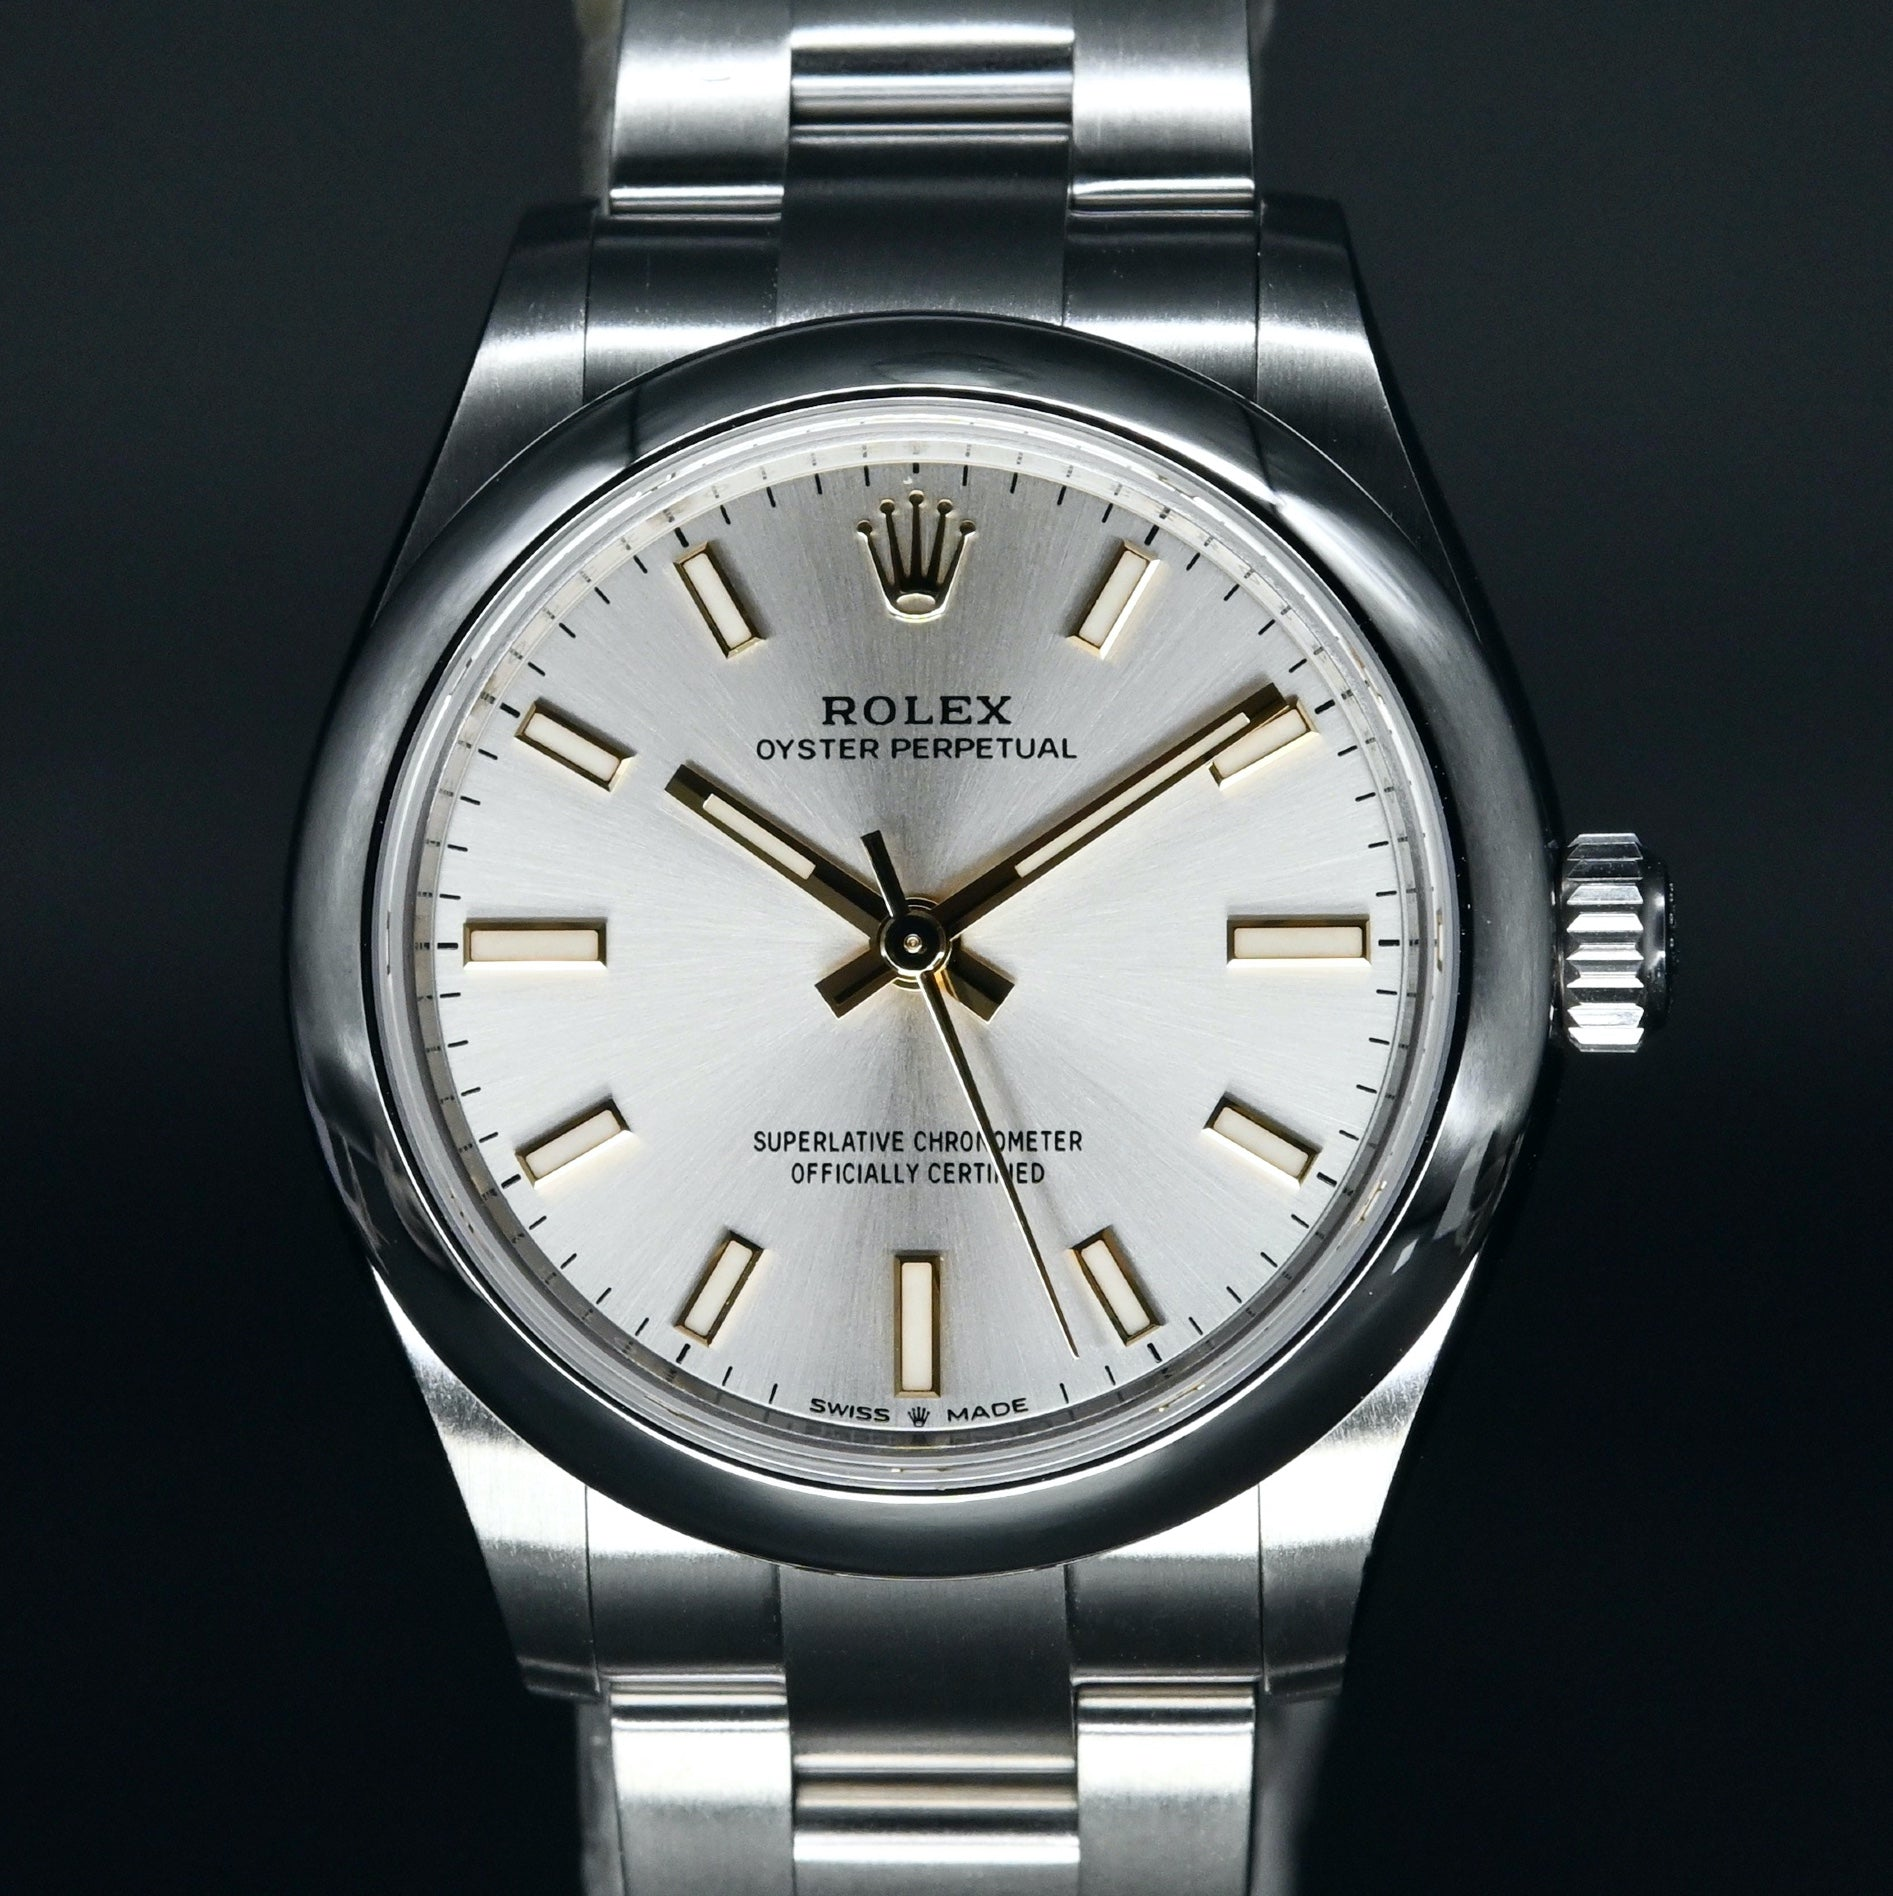 [Brand New Watch] Rolex Oyster Perpetual 31mm 277200 Silver Dial